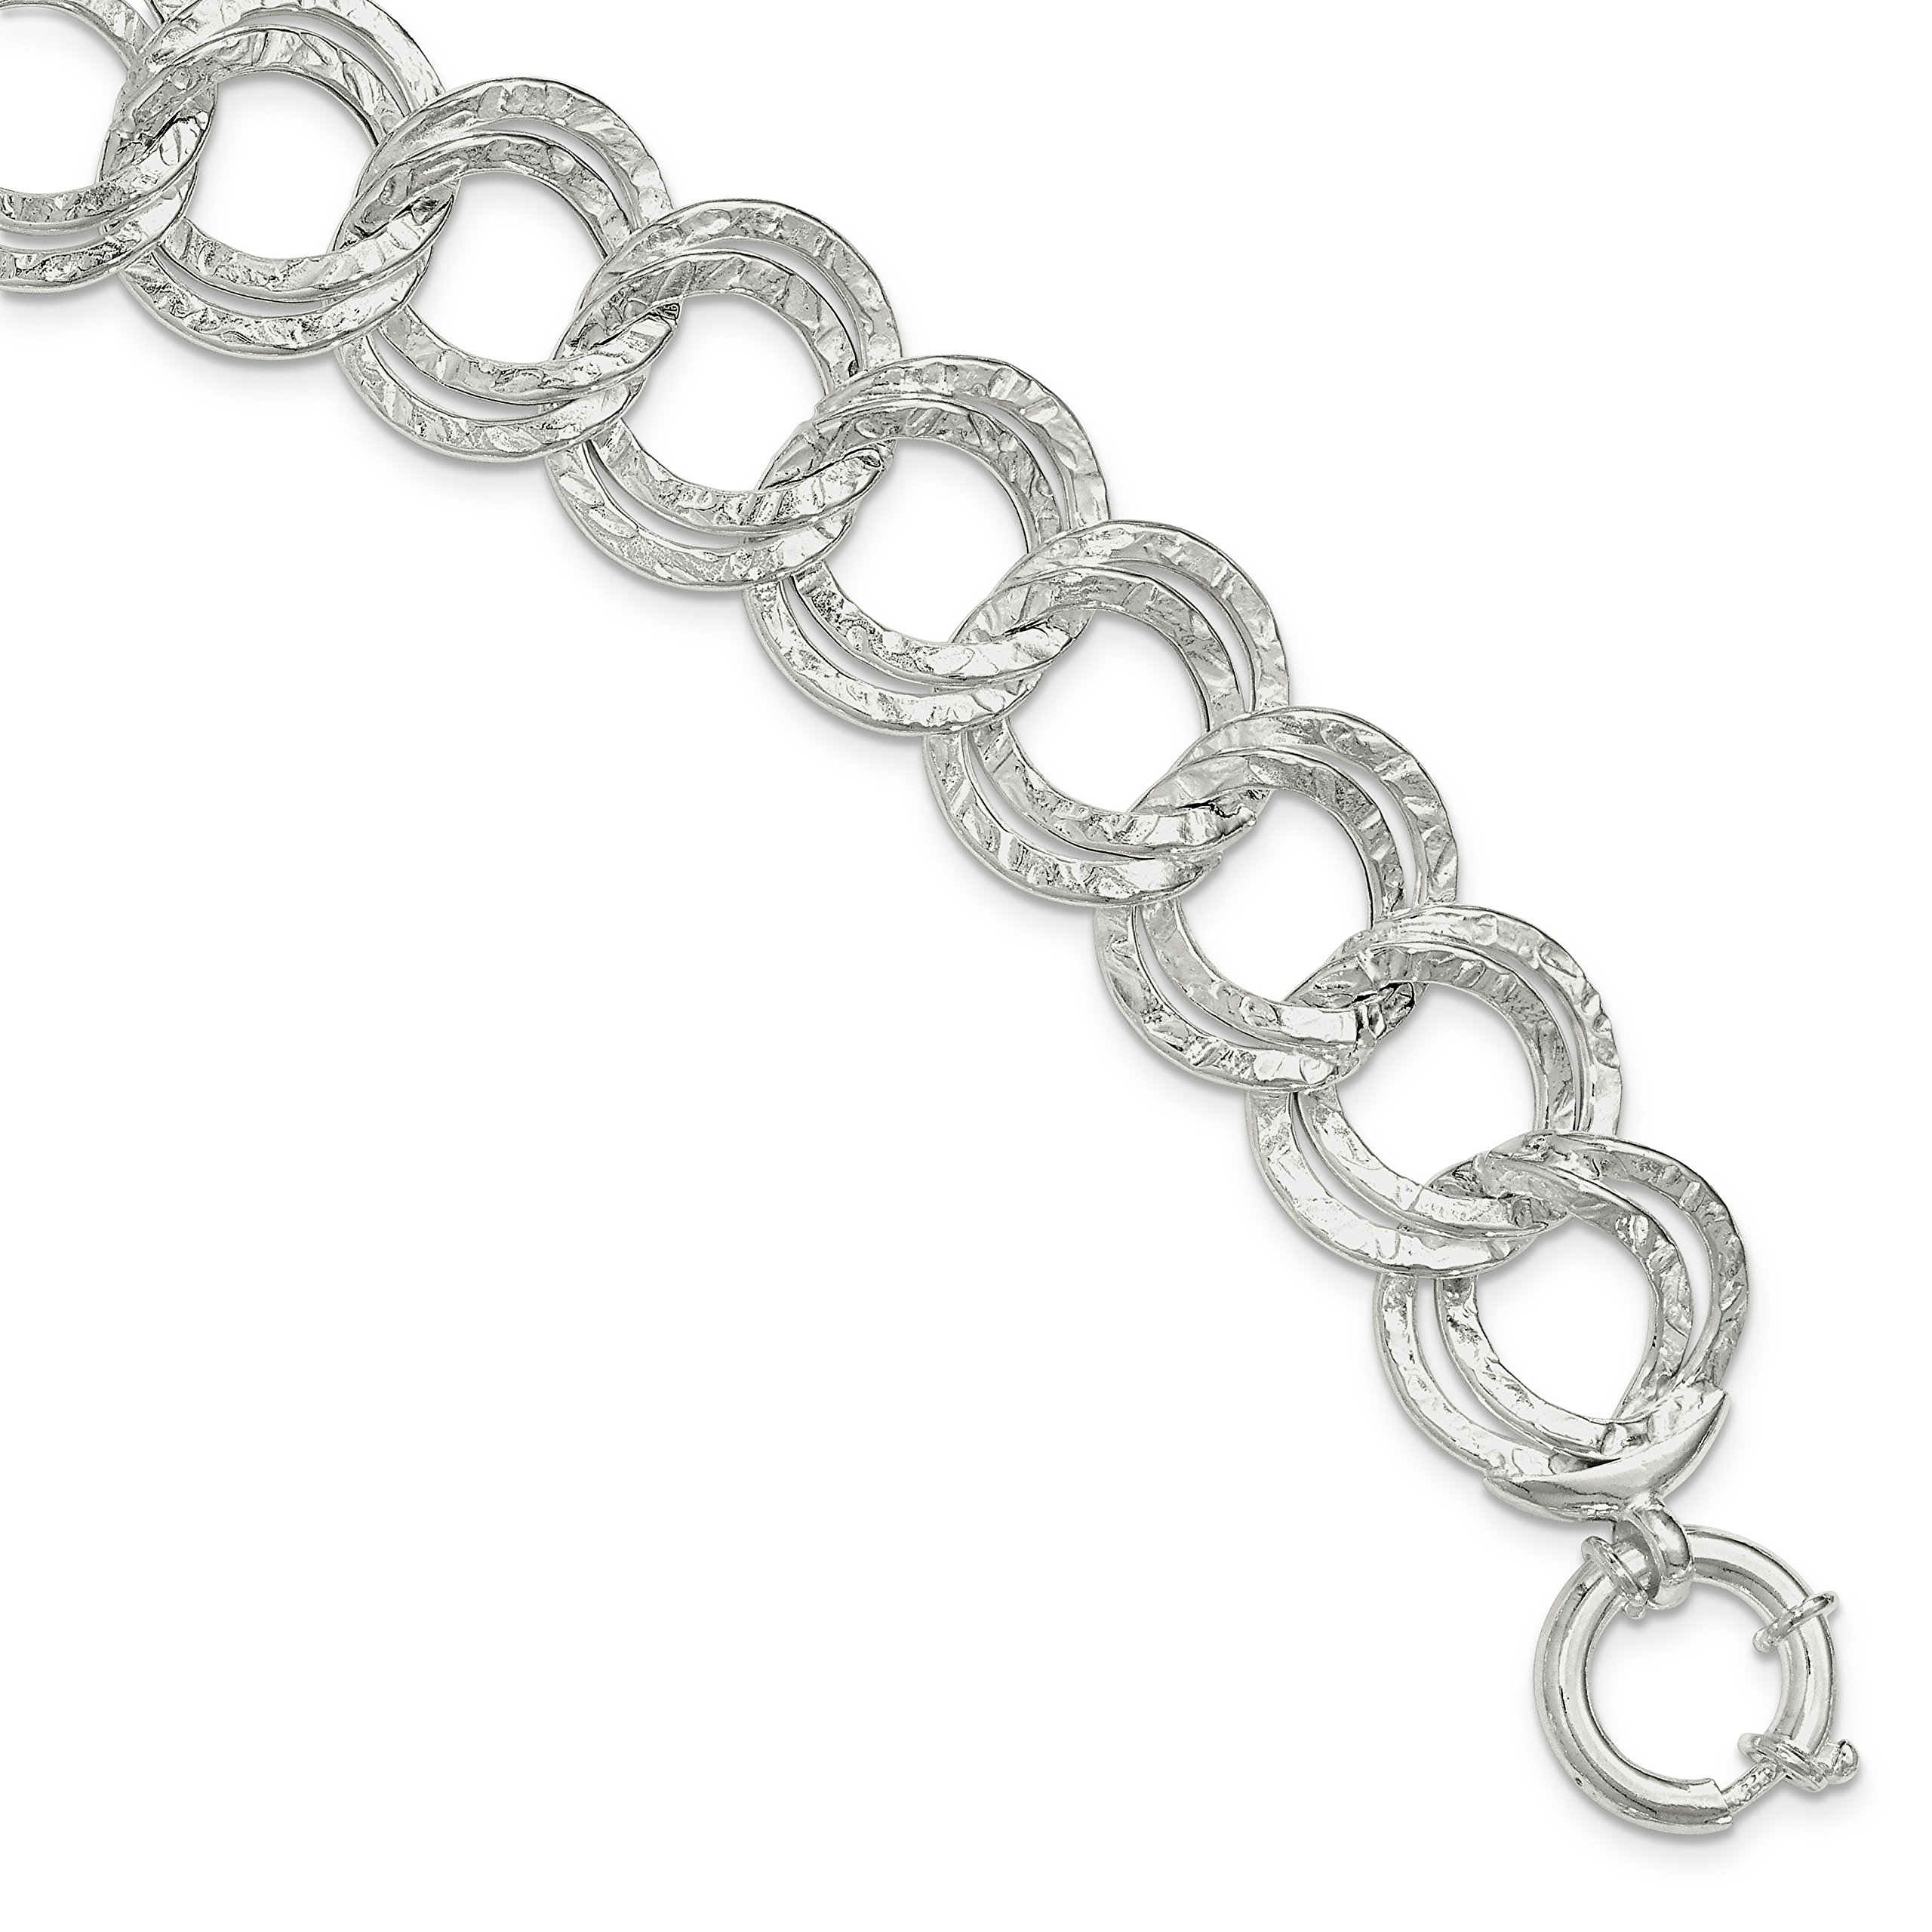 ICE CARATS 925 Sterling Silver Hammered Link Bracelet 8 Inch Fine Jewelry Gift Set For Women Heart